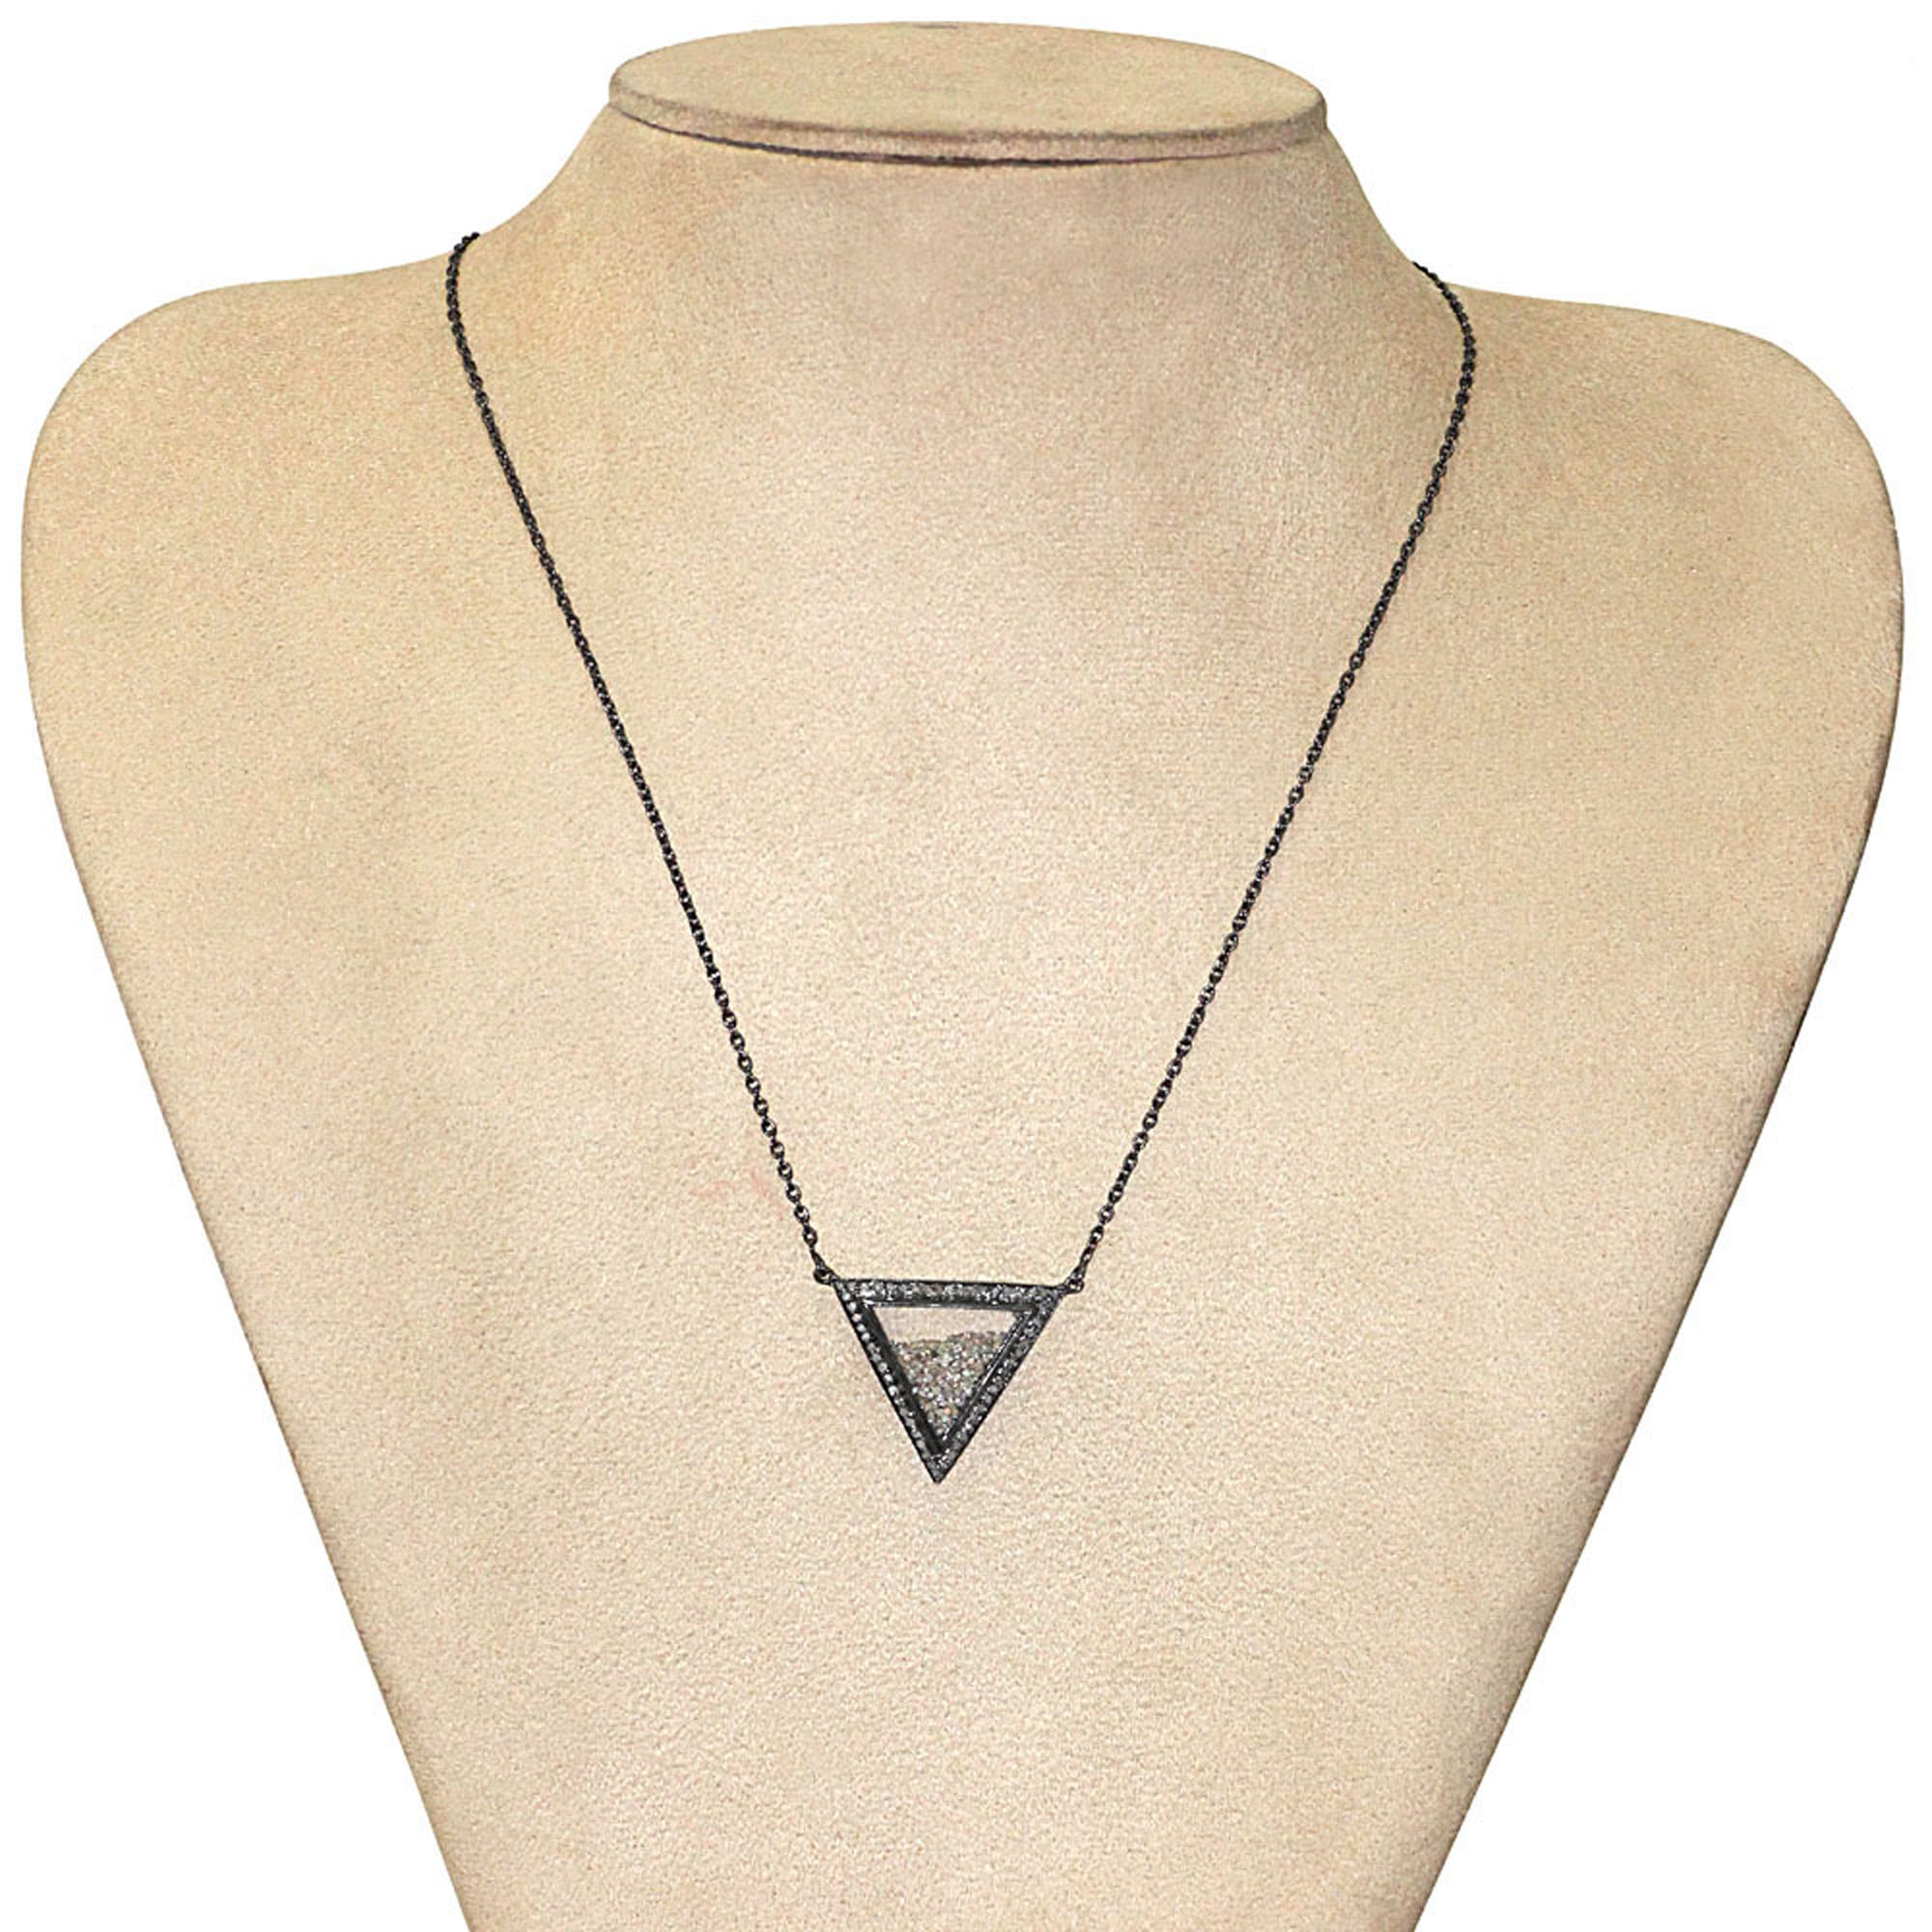 Genuine diamond 925 sterling silver crystal shaker necklace with chain